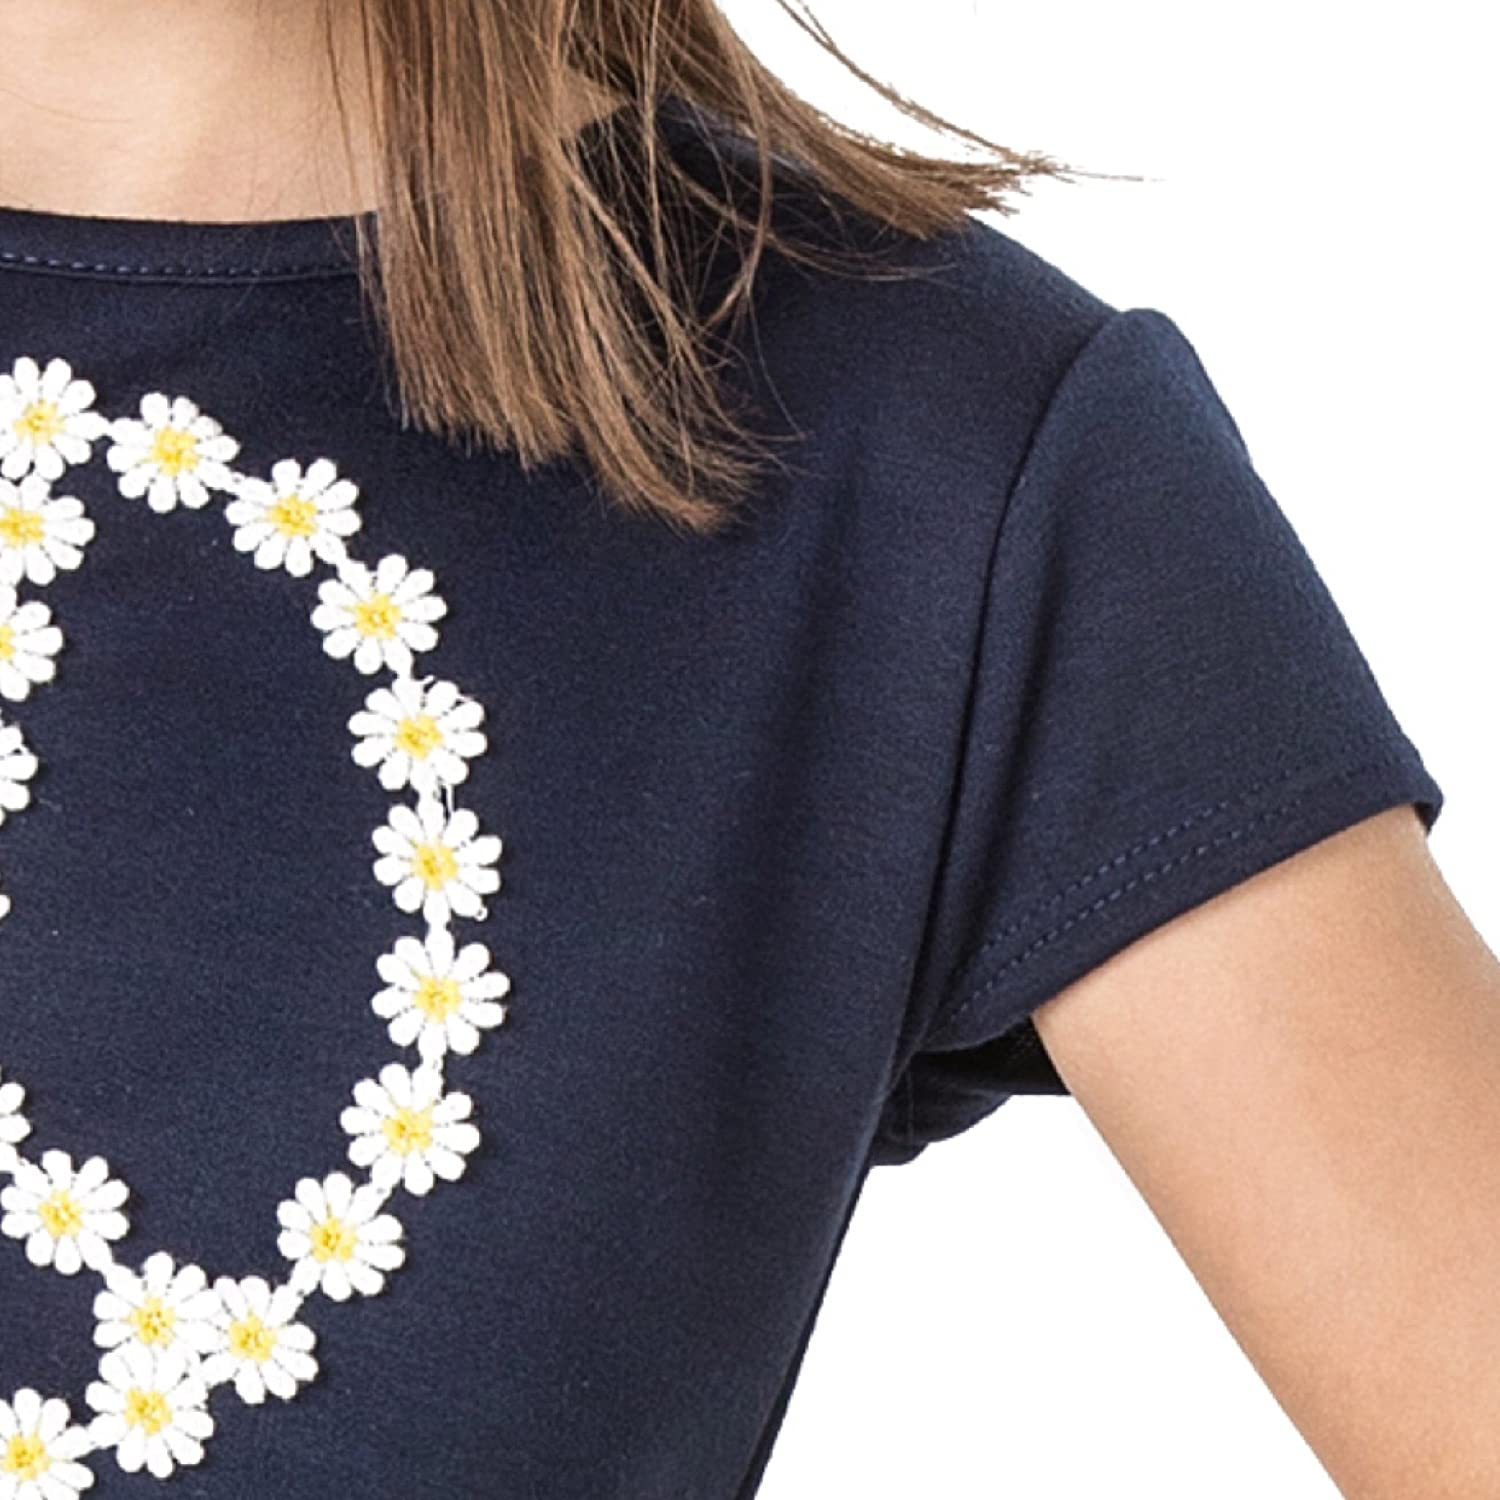 Shelby Round Neck Daisy Trim Lace Ruffle Tees Clothes Made in USA FASHION X FAITH Girls Shirts Tops